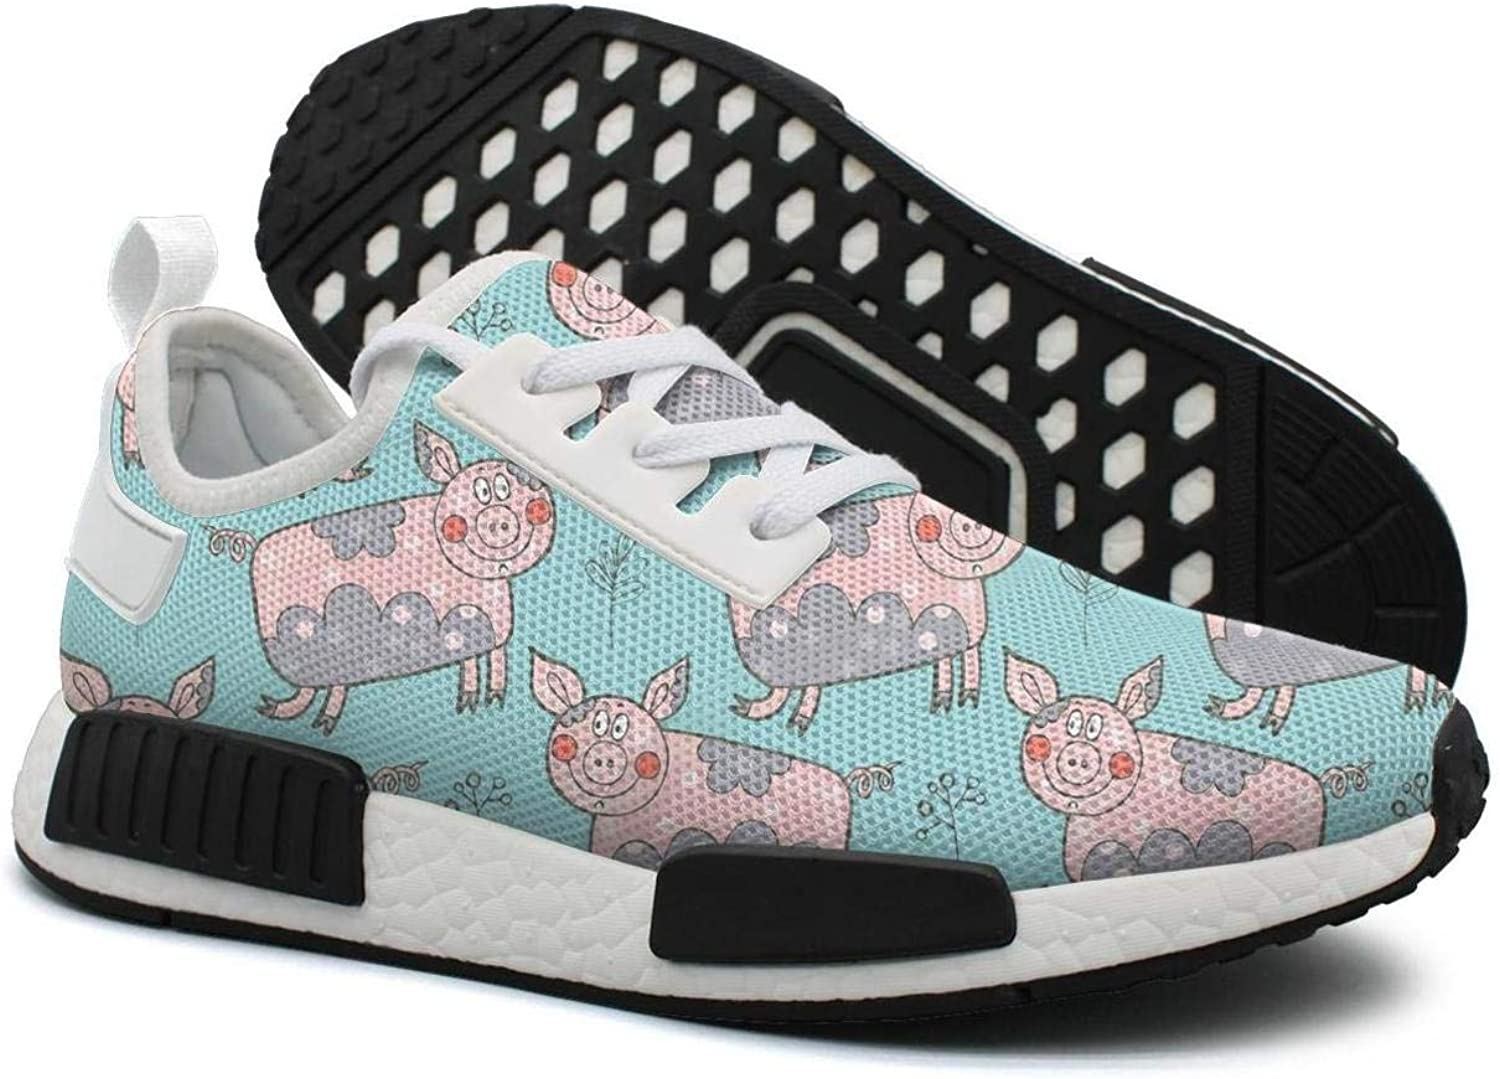 Hand Drawn Beautiful Flower Pig in A Village Women's Comfortable Lightweight Sneakers shoes Gym Outdoor Running shoes